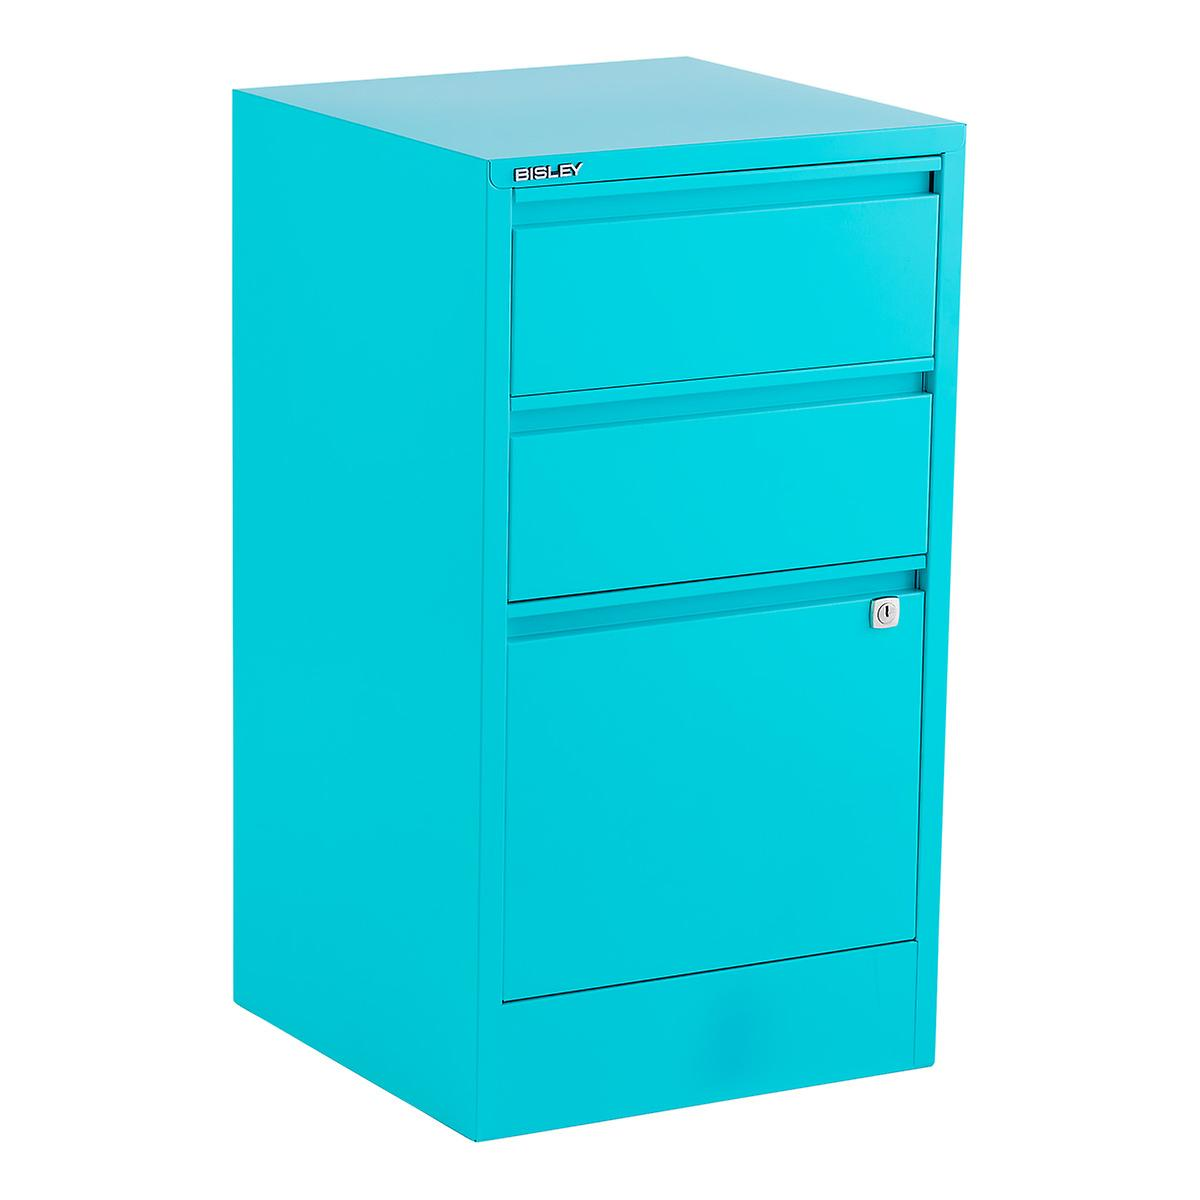 base cabinet concept metal of pictures cabinets bisley imposing filing full drawer size